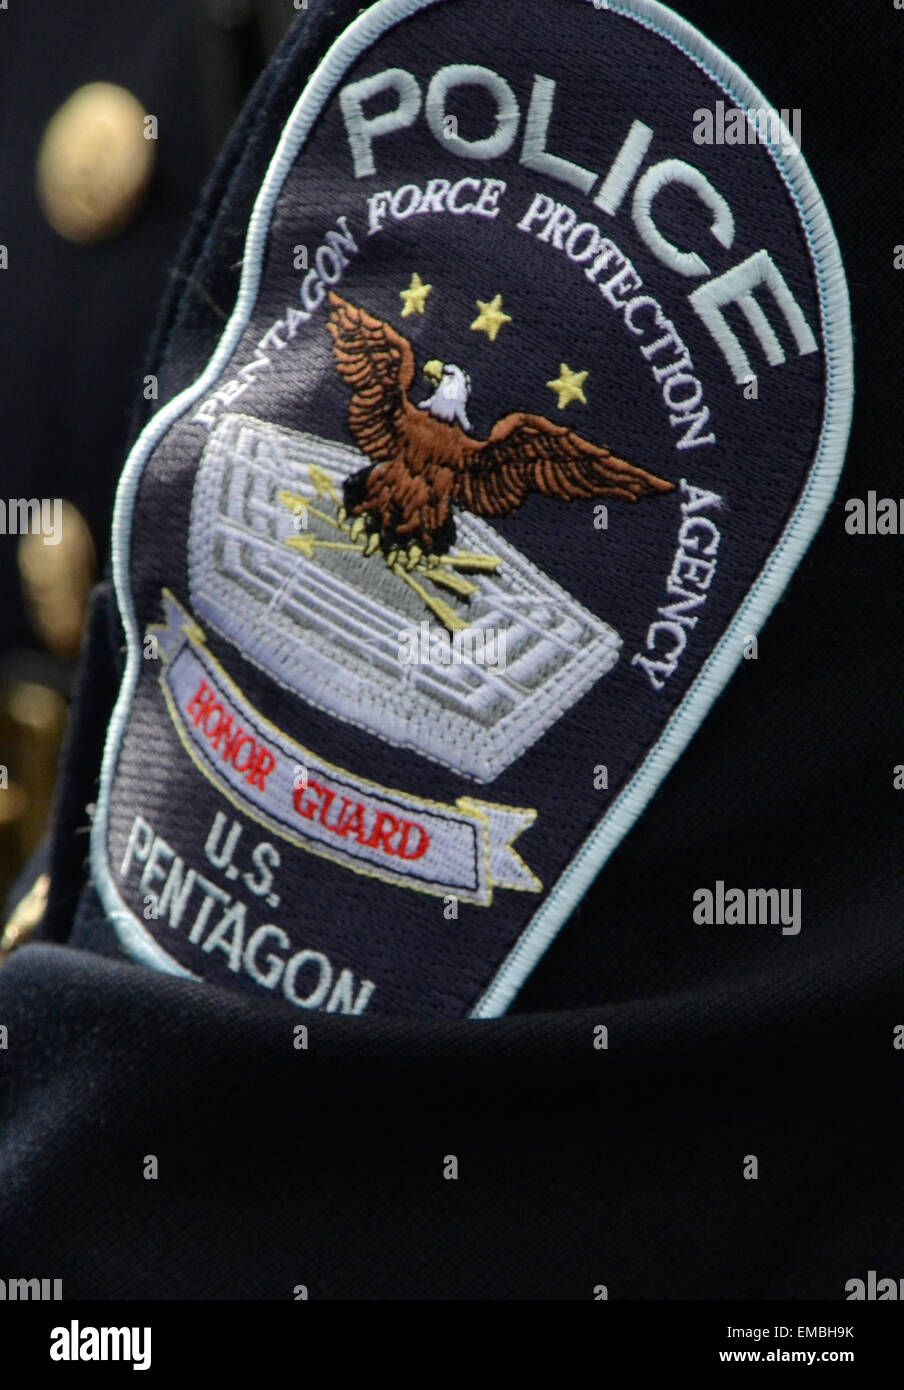 Pentagon Police Patch Stock Photo, Royalty Free Image: 81389663 ...